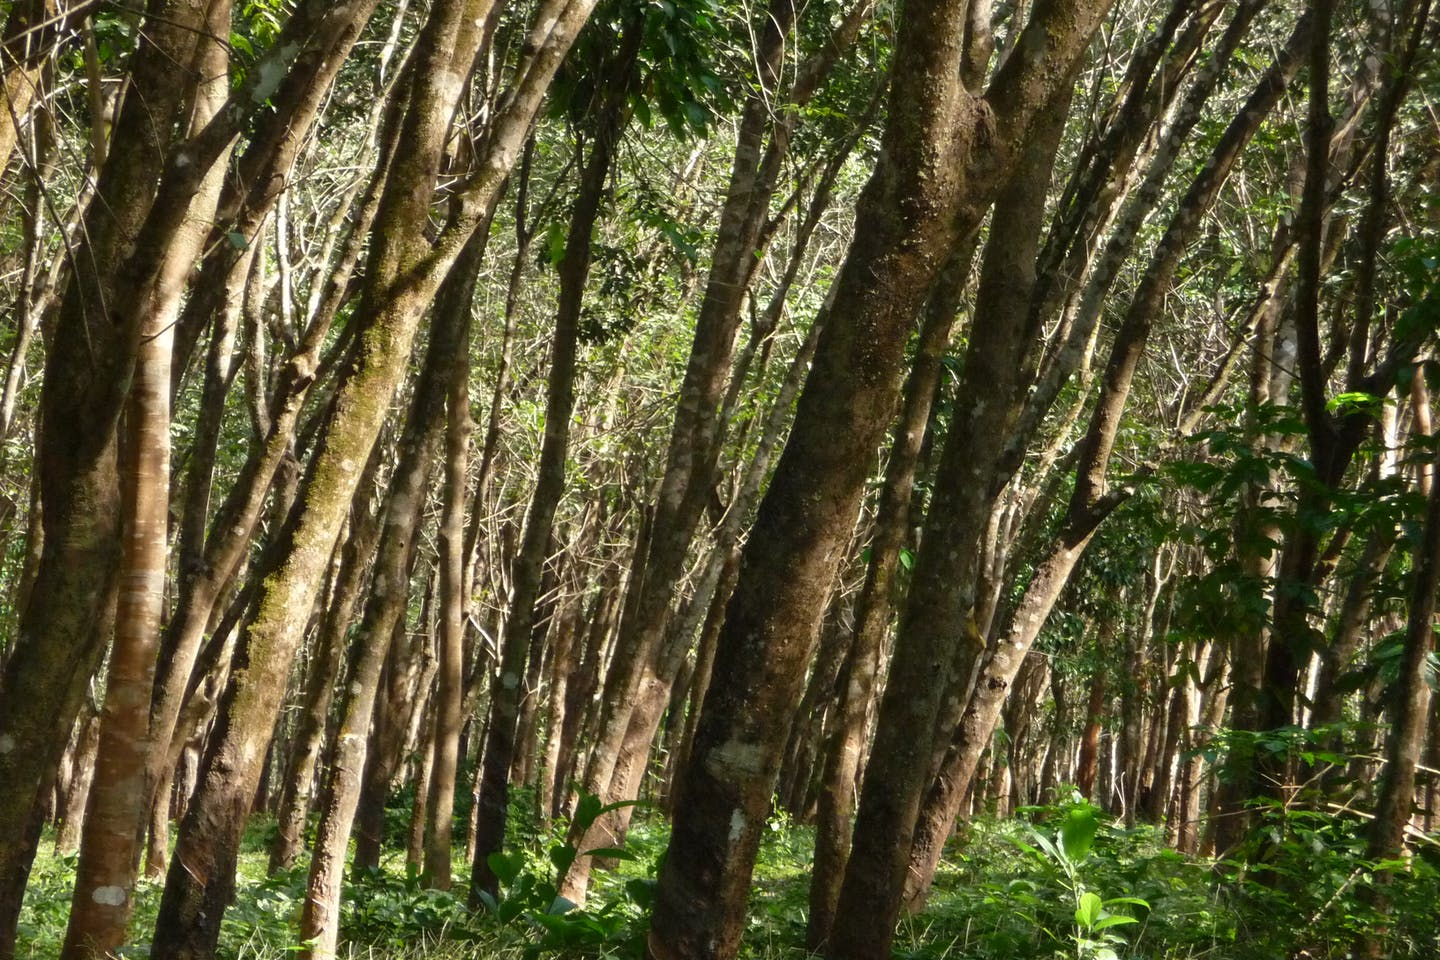 Rubber trees undergrowth